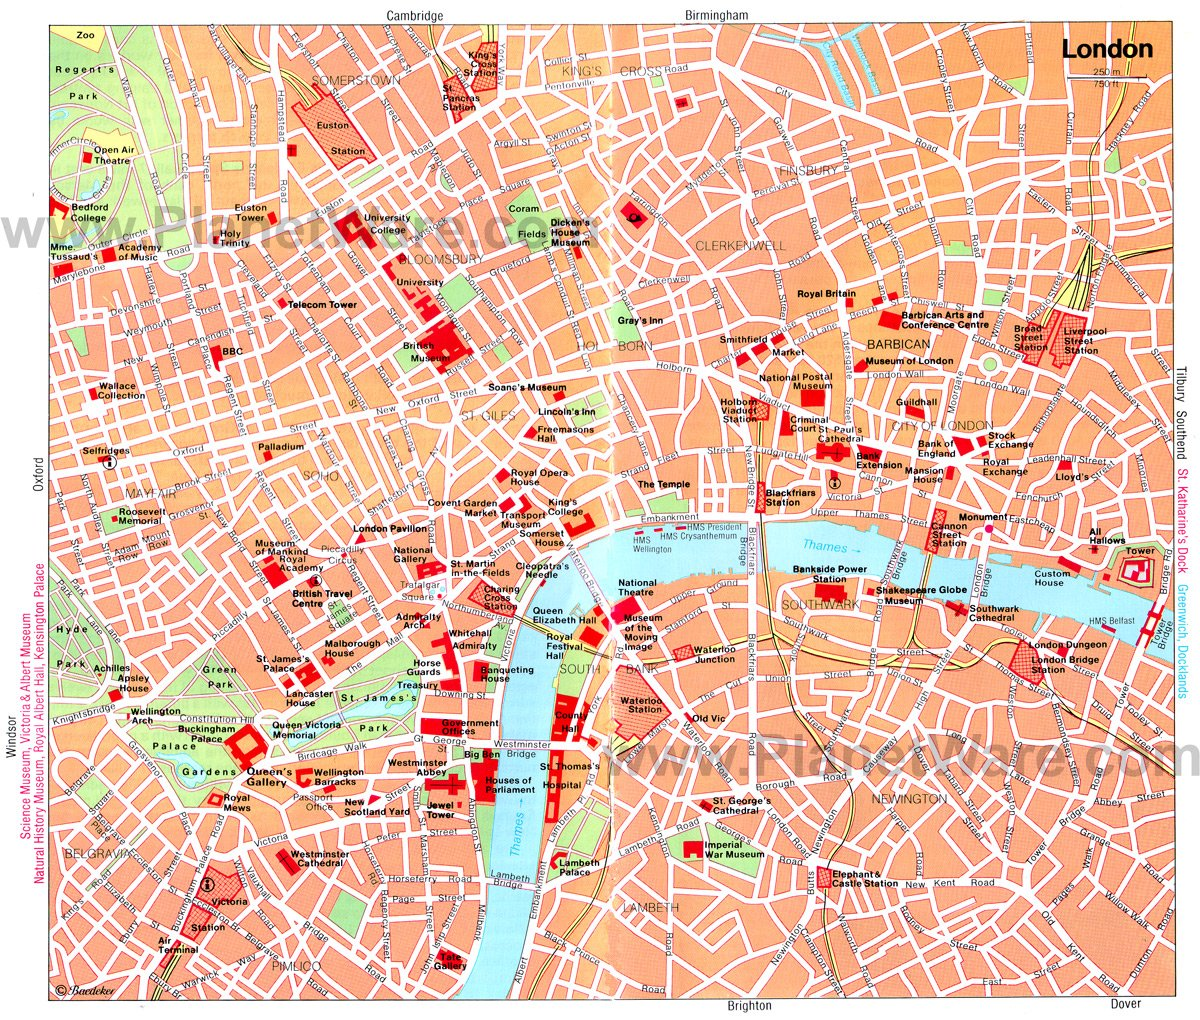 17 TopRated Tourist Attractions in London – Tourist Map of London England